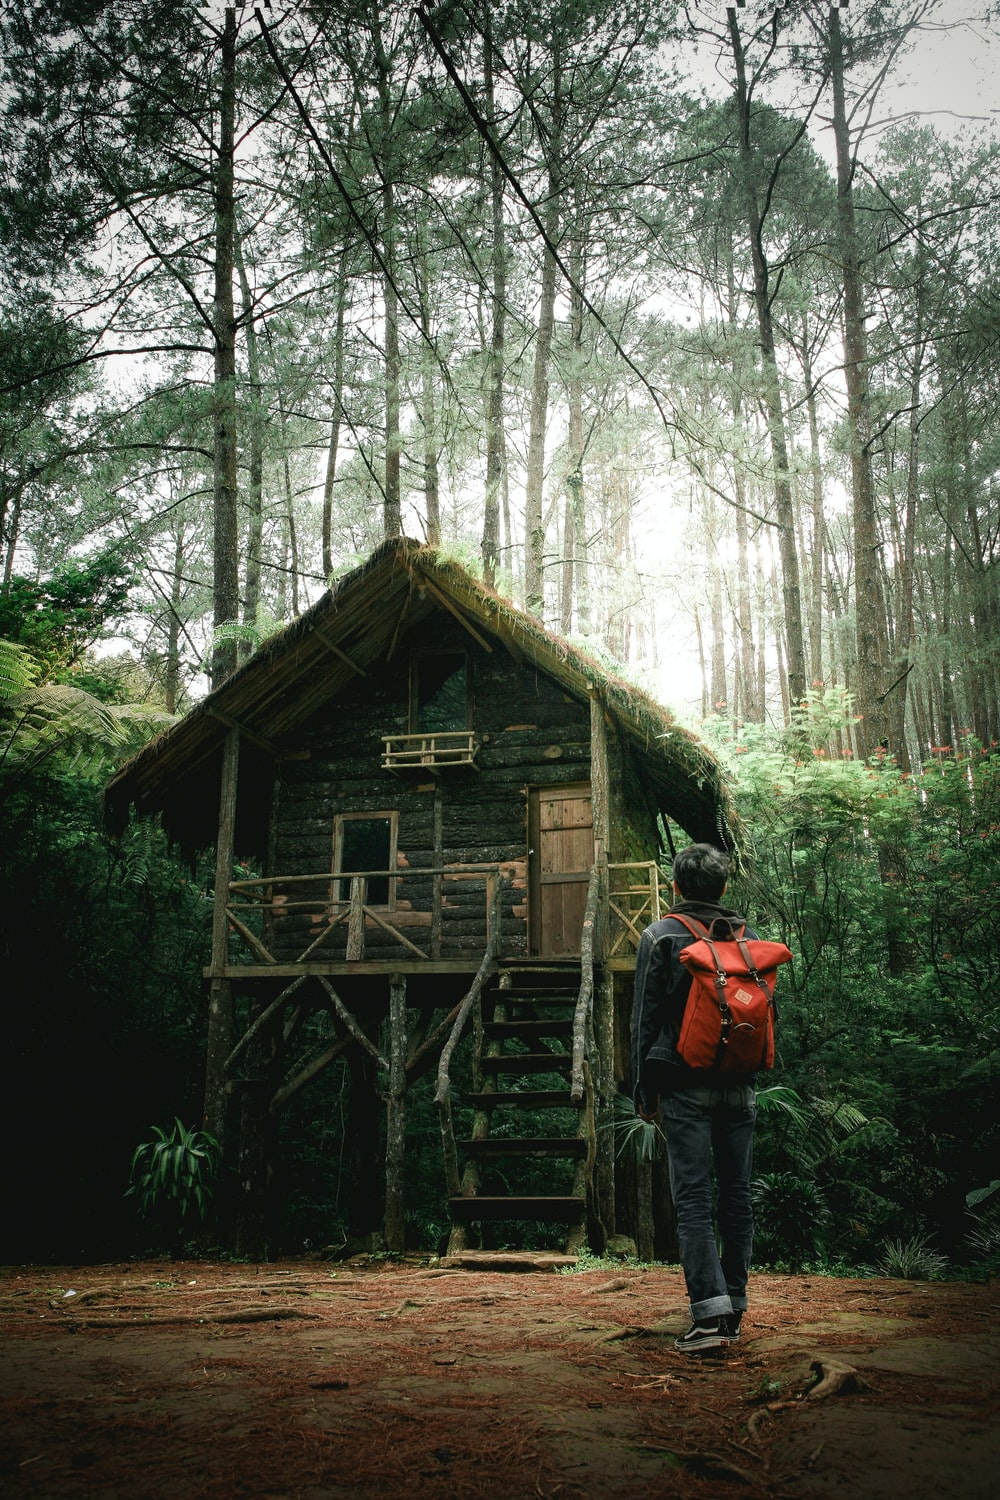 man with backpack beside a wooden house at the forest